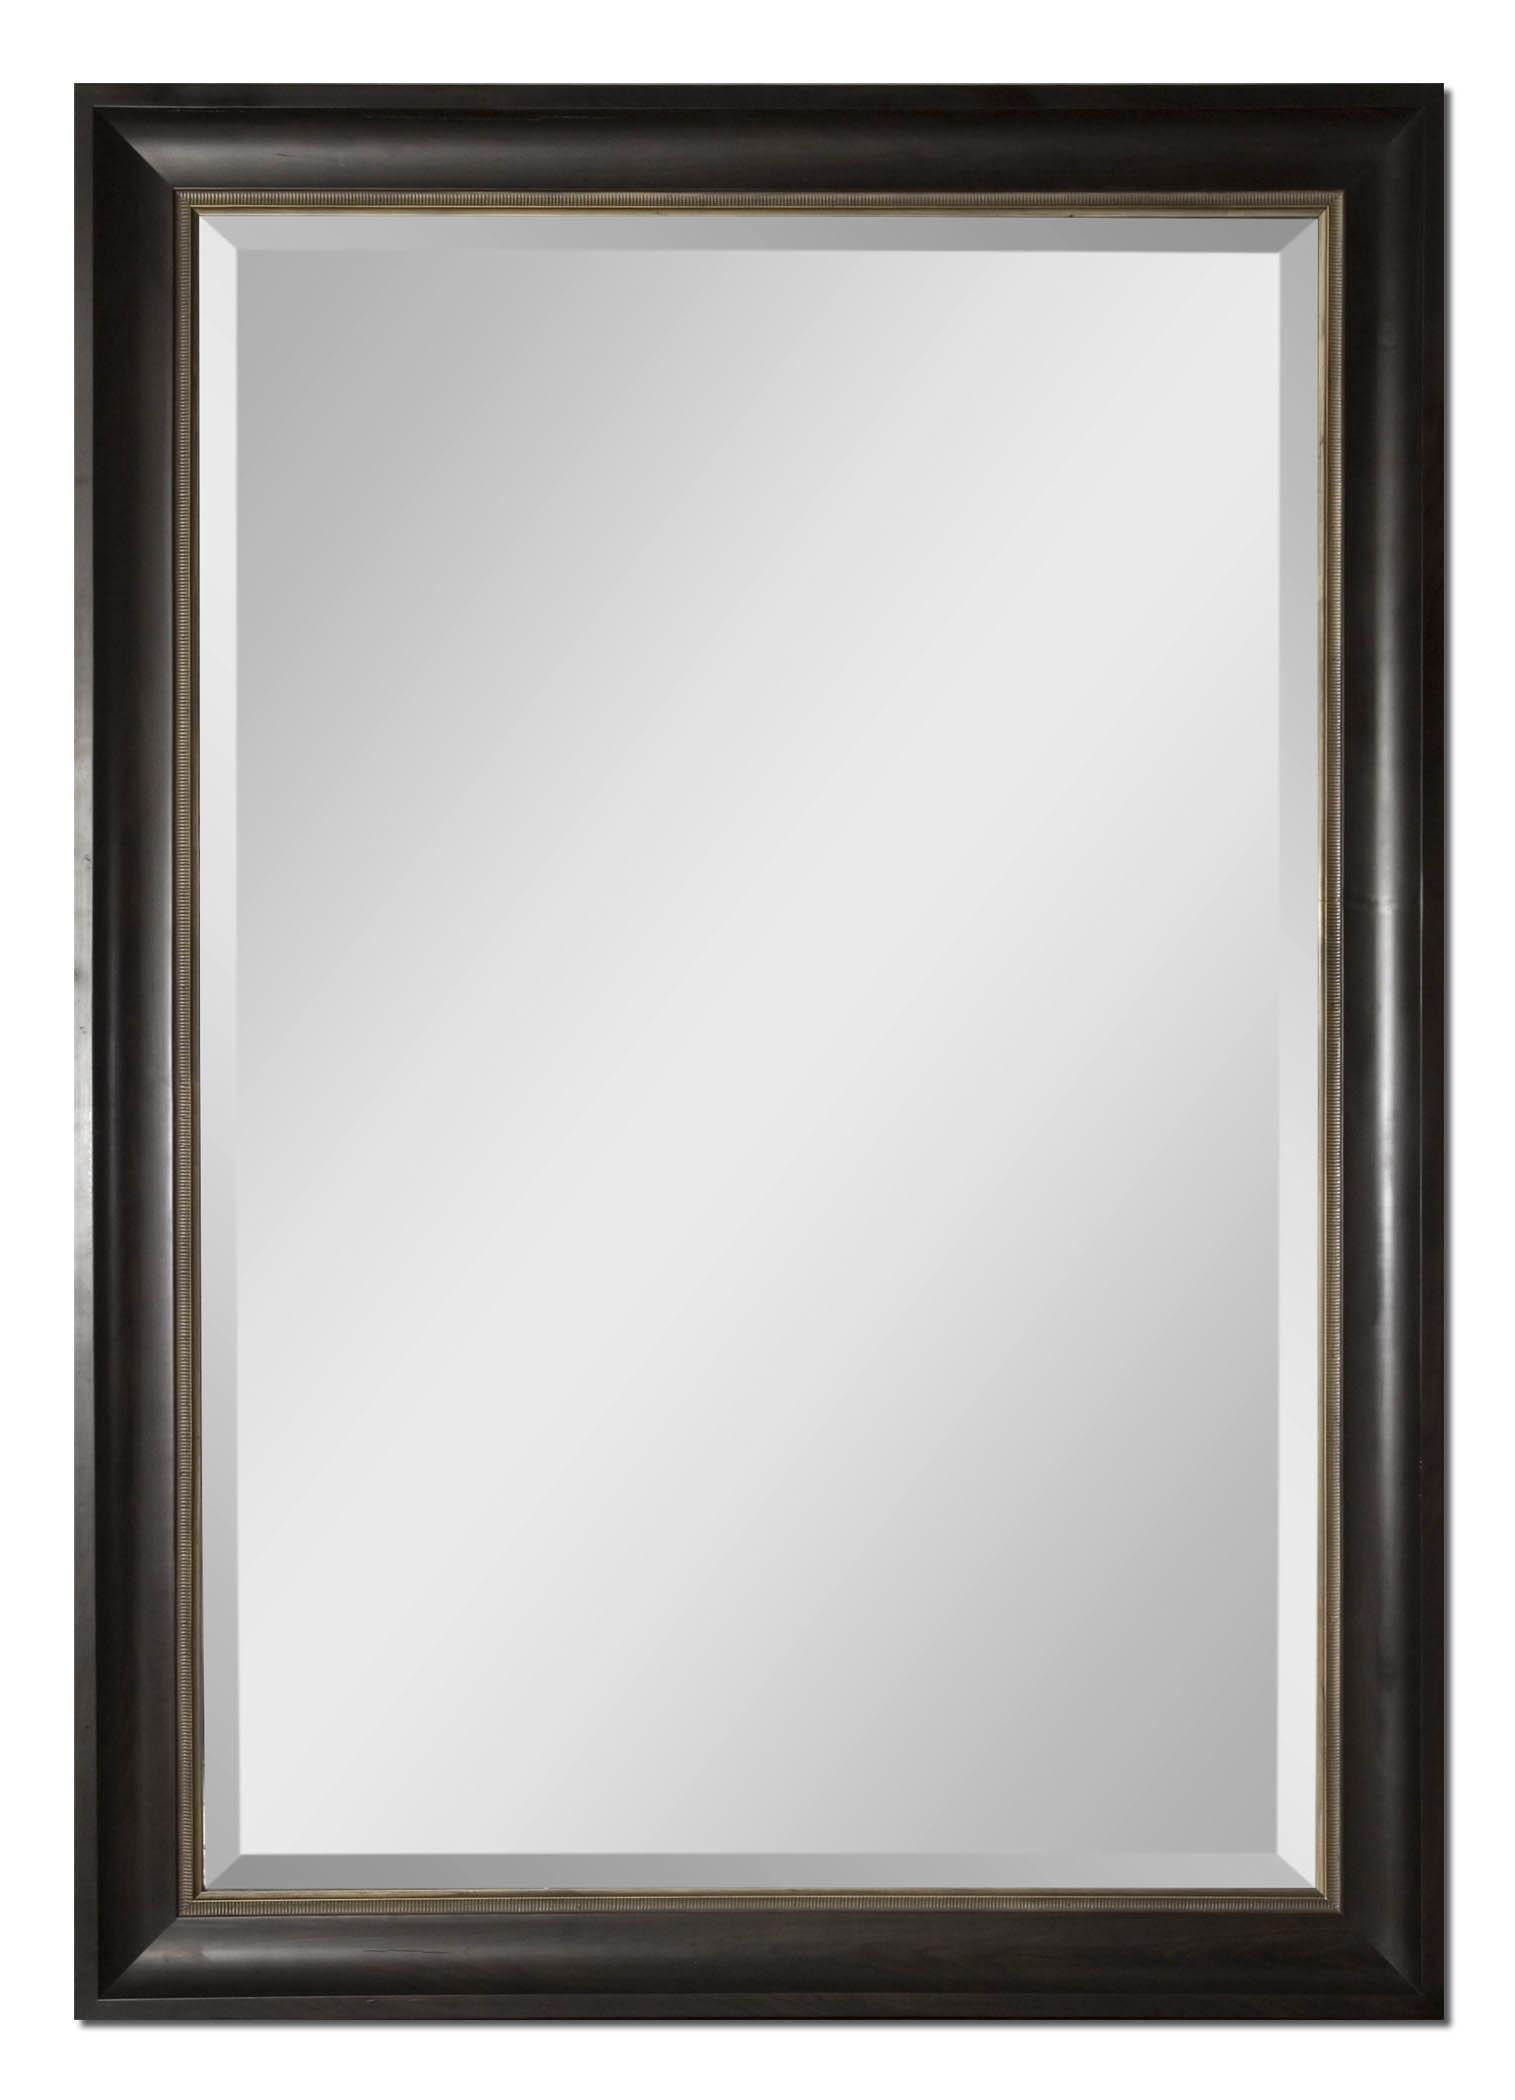 Uttermost Mirrors Axton - Item Number: 14178